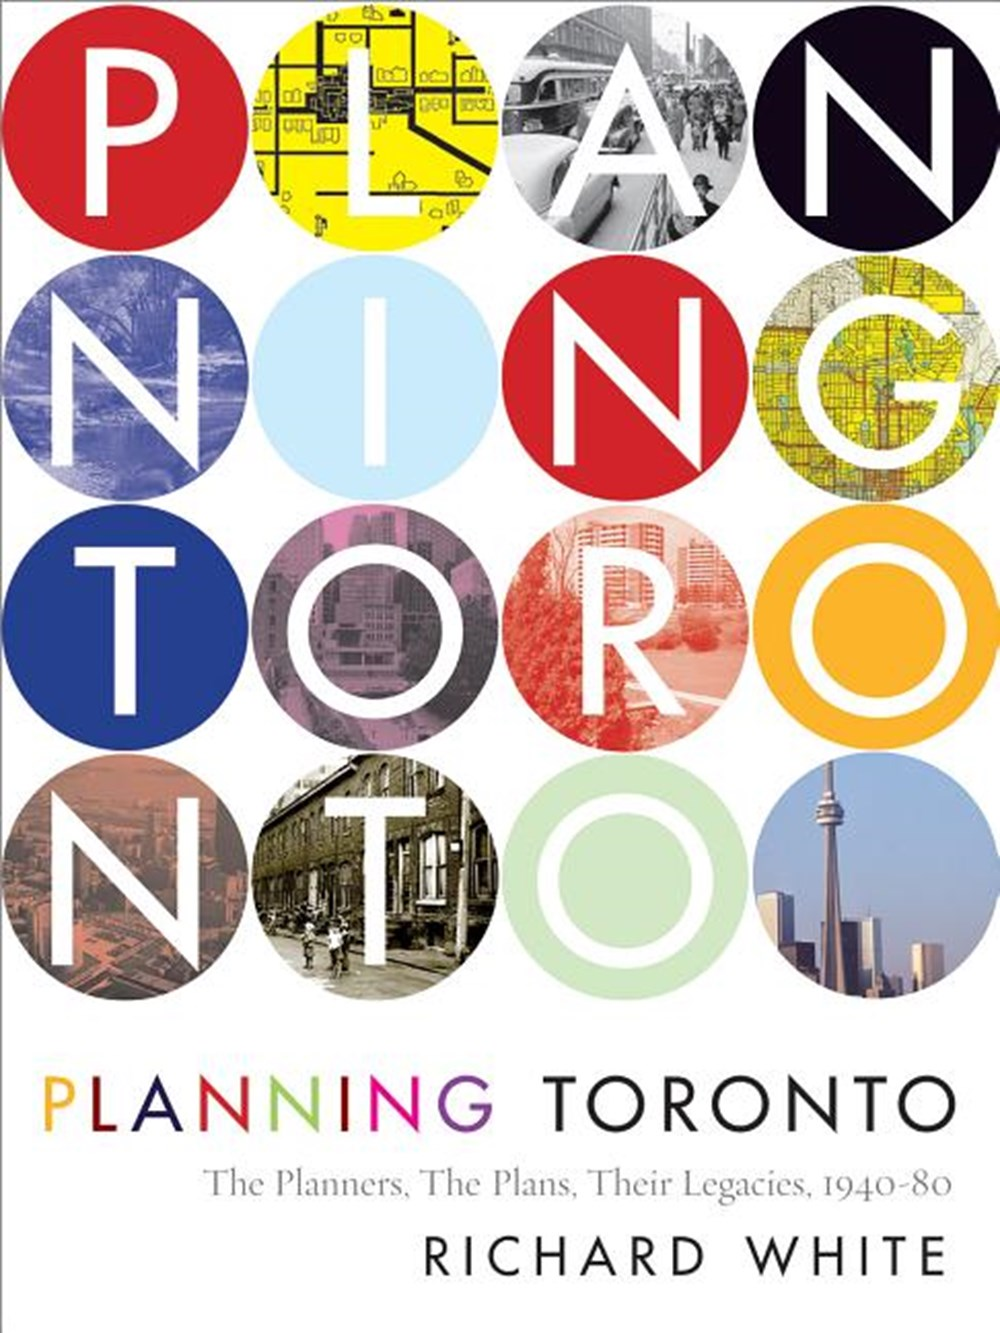 Planning Toronto The Planners, the Plans, Their Legacies, 1940-80